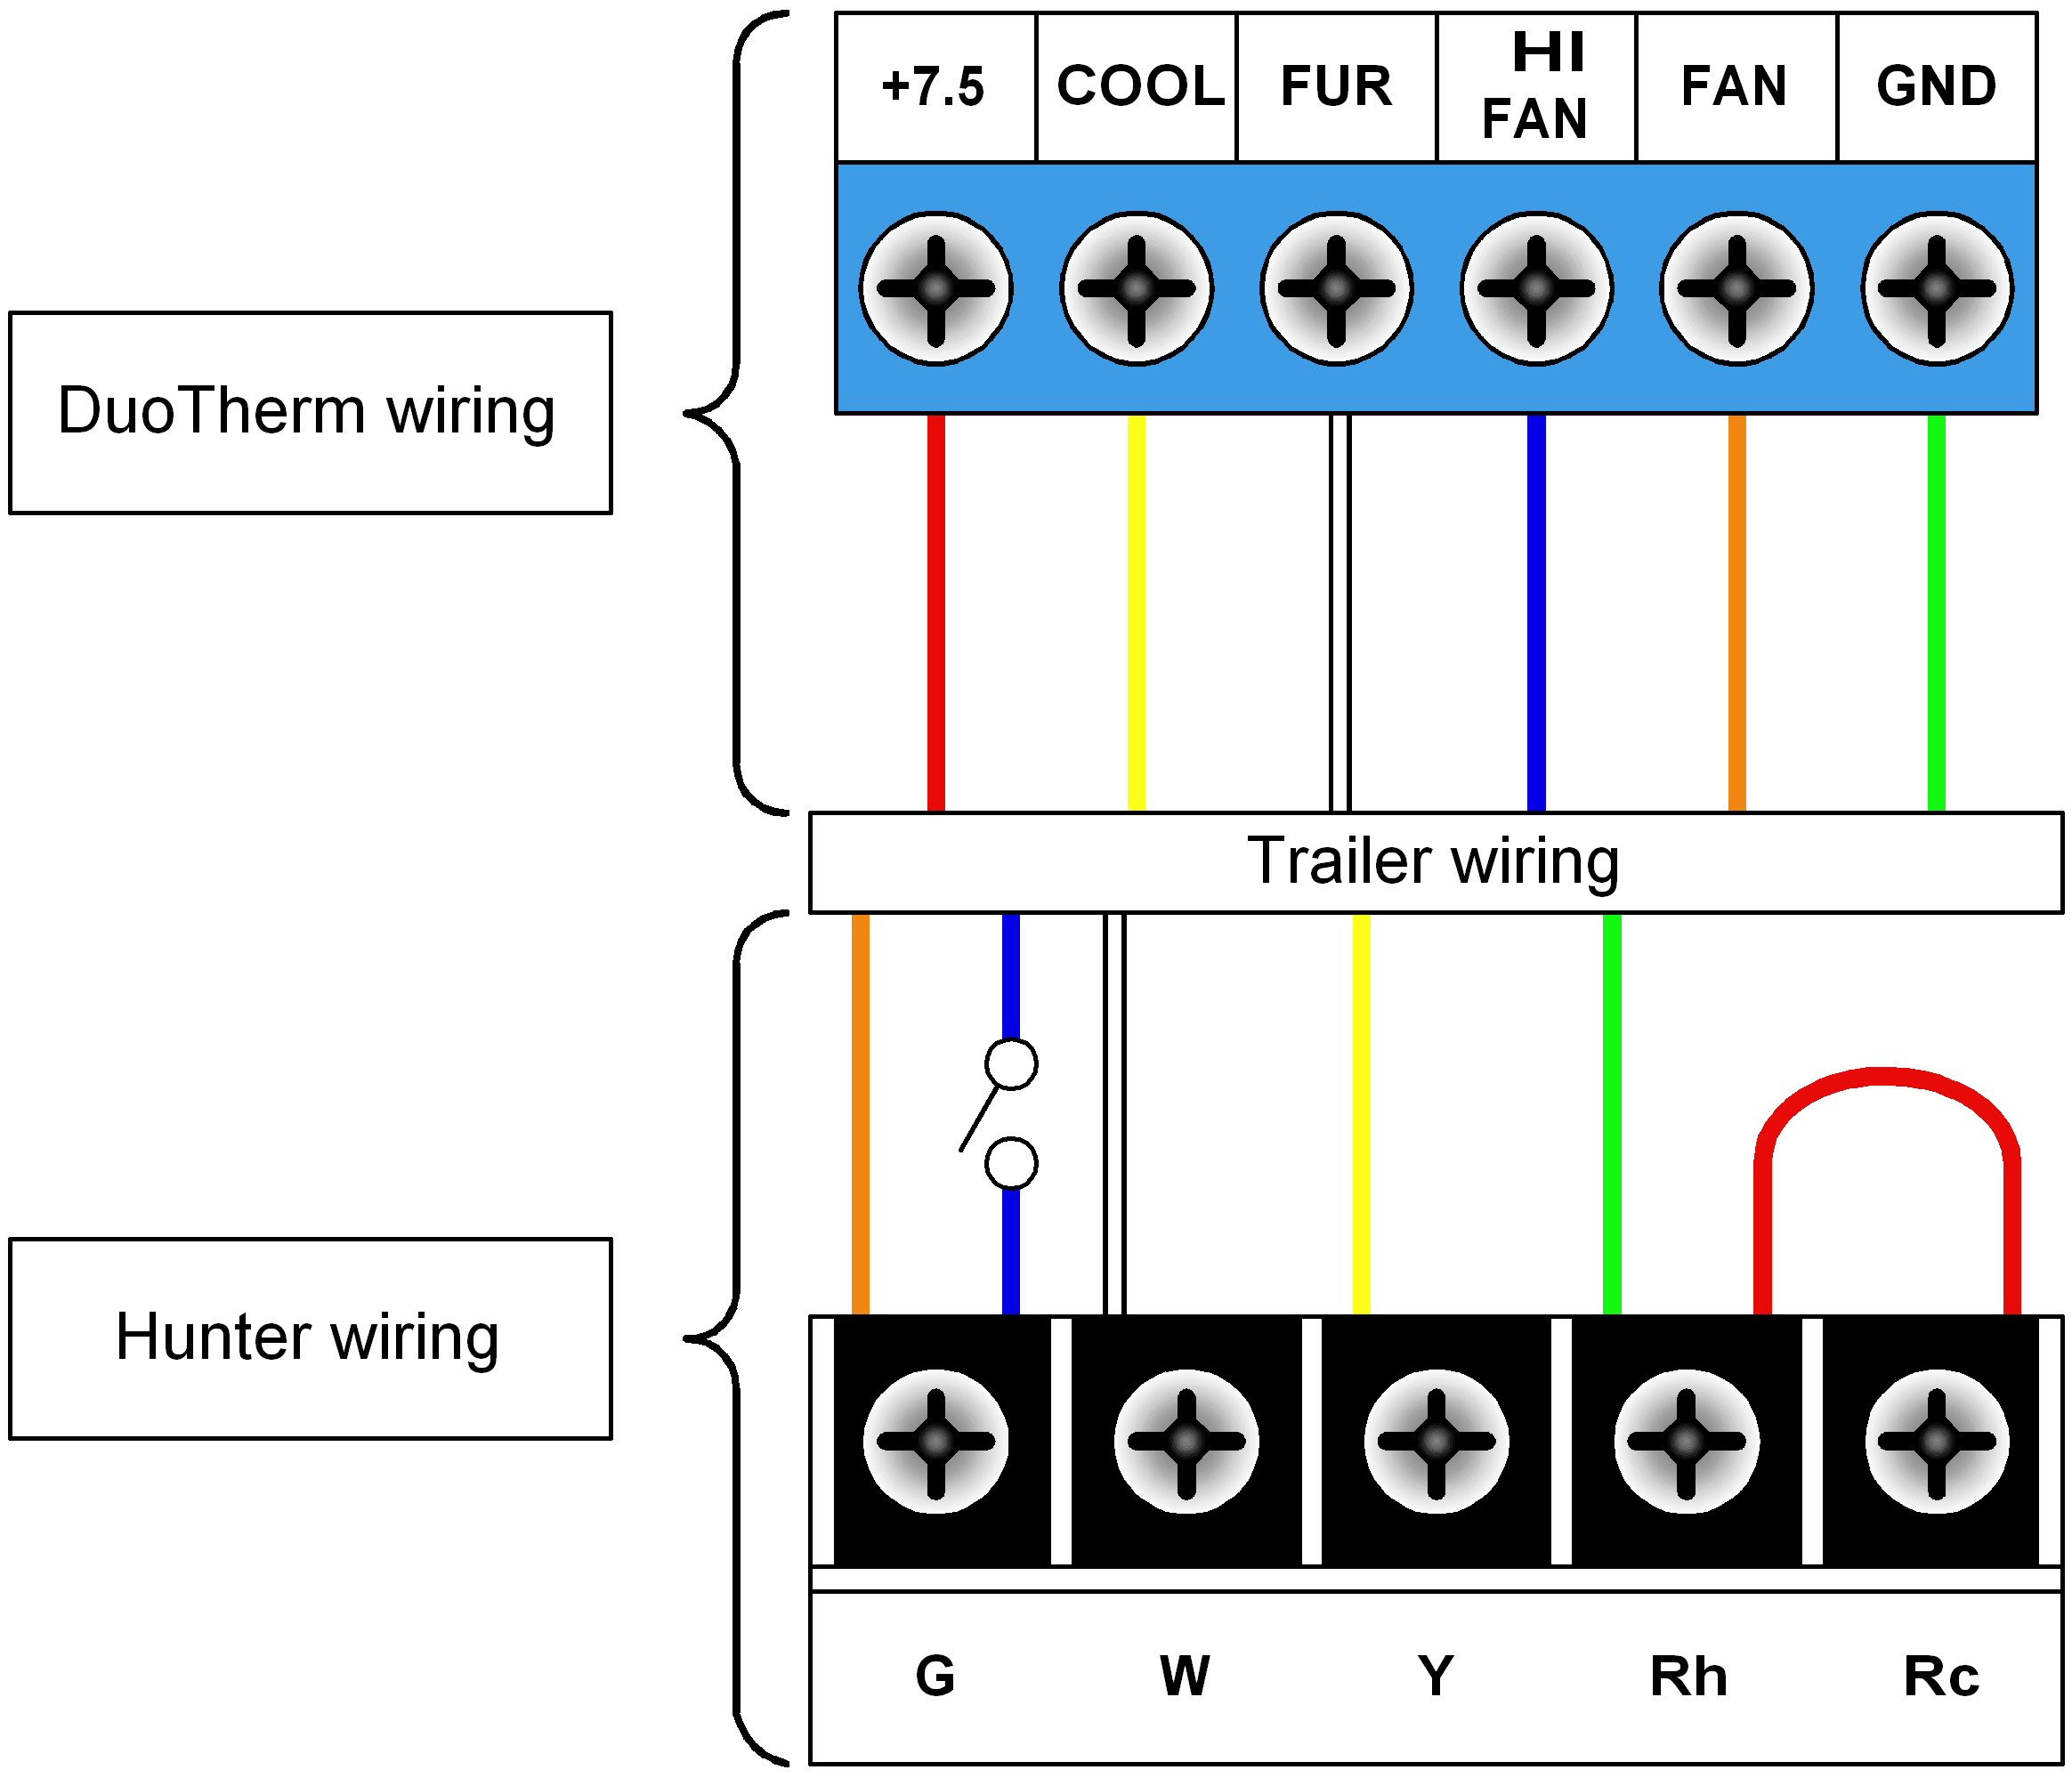 Hunterthermostatwiringdiagram thermostat wiring diagram color wiring diagram online